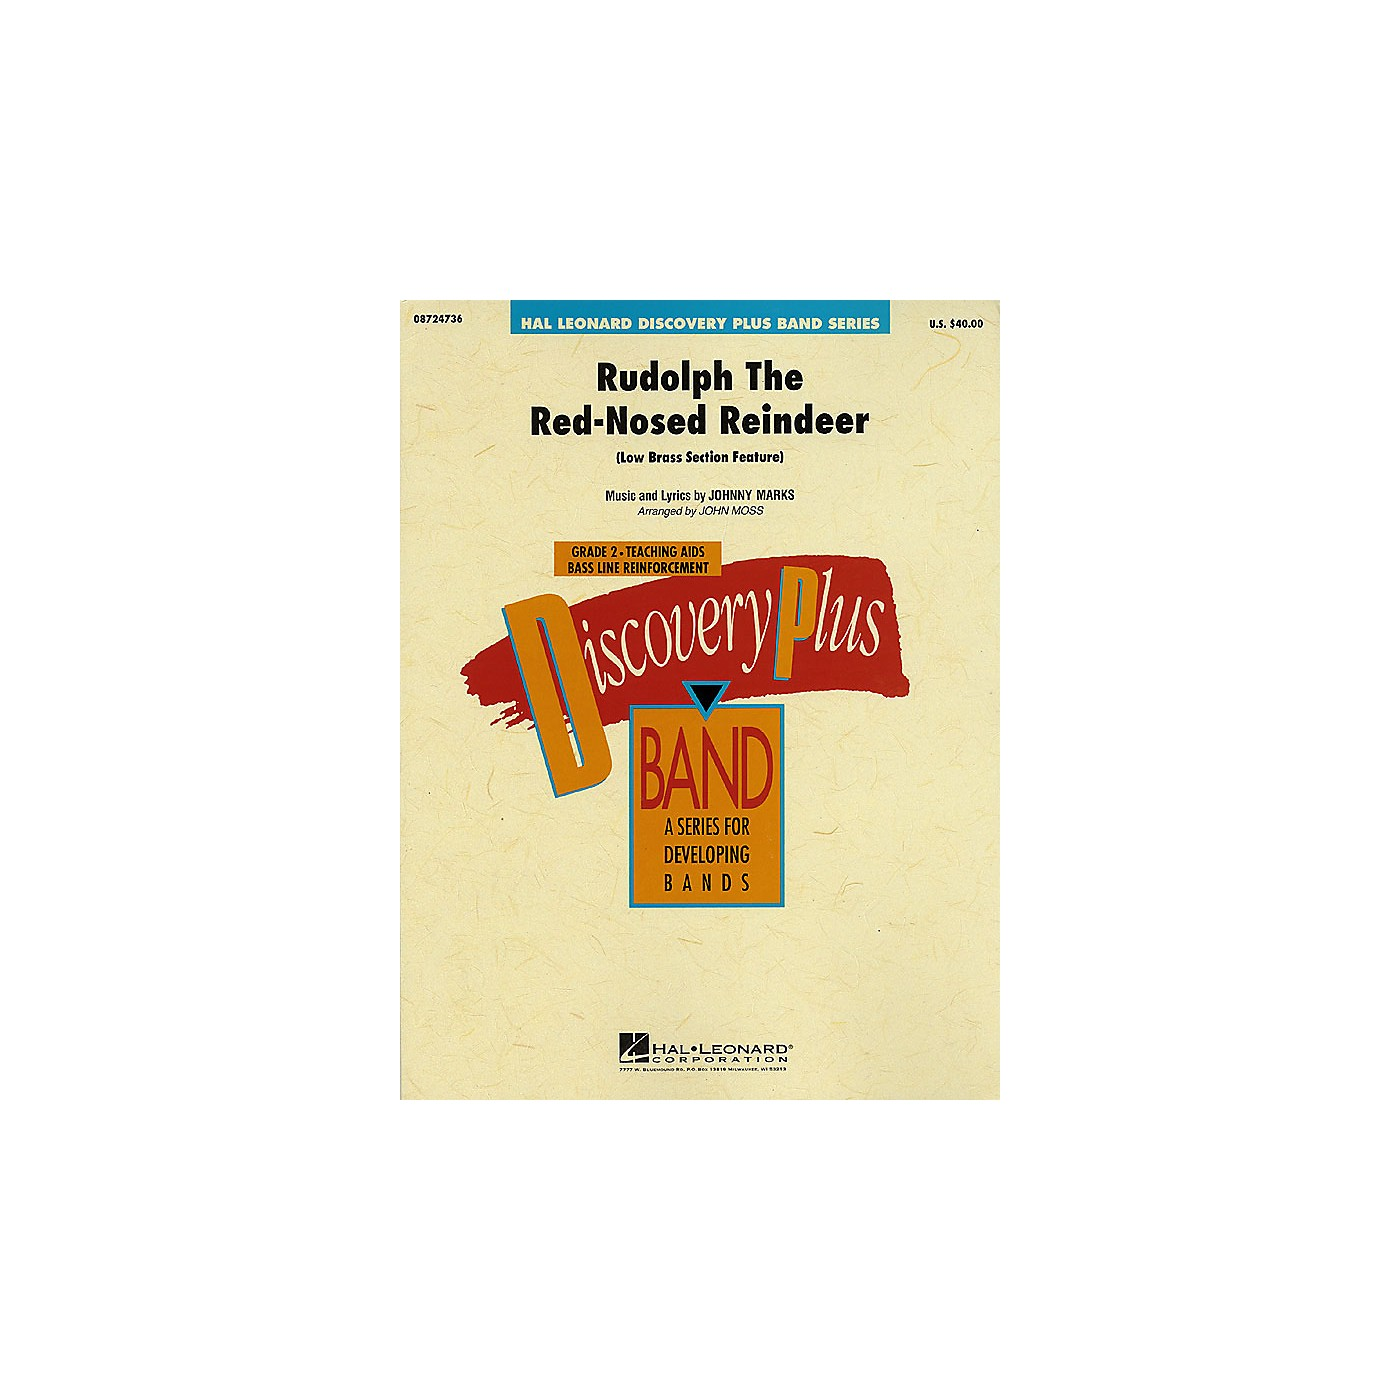 Hal Leonard Rudolph The Red-Nosed Reindeer - Discovery Plus Concert Band Series Level 2 arranged by John Moss thumbnail